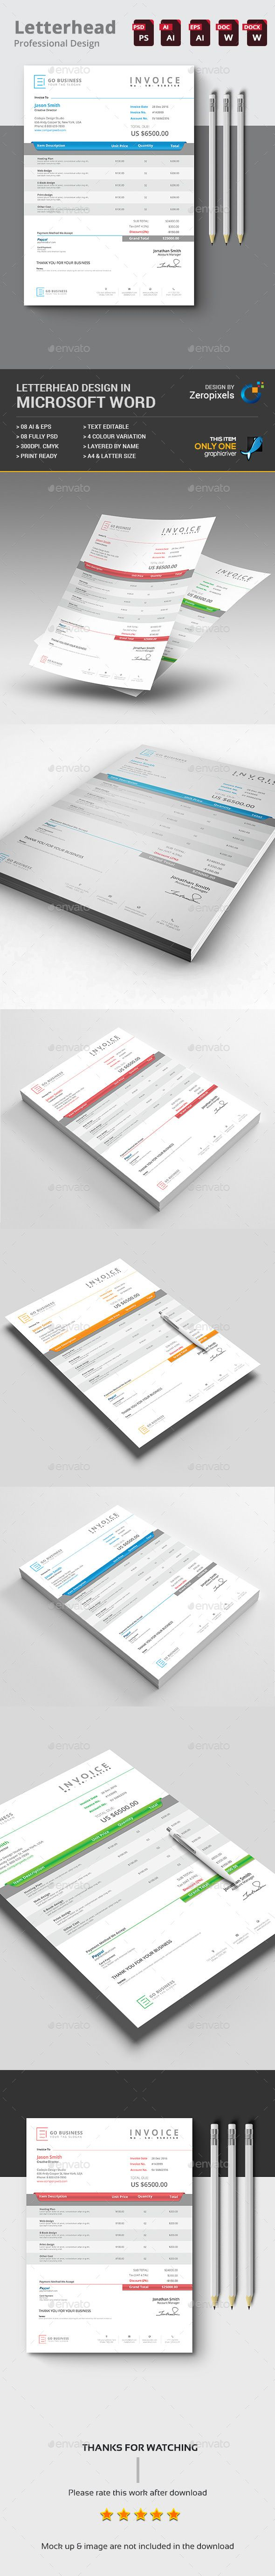 Clean Invoice Template PSD, Vector EPS, AI, MS Word. Download here: https://graphicriver.net/item/clean-invoice/17427146?ref=ksioks